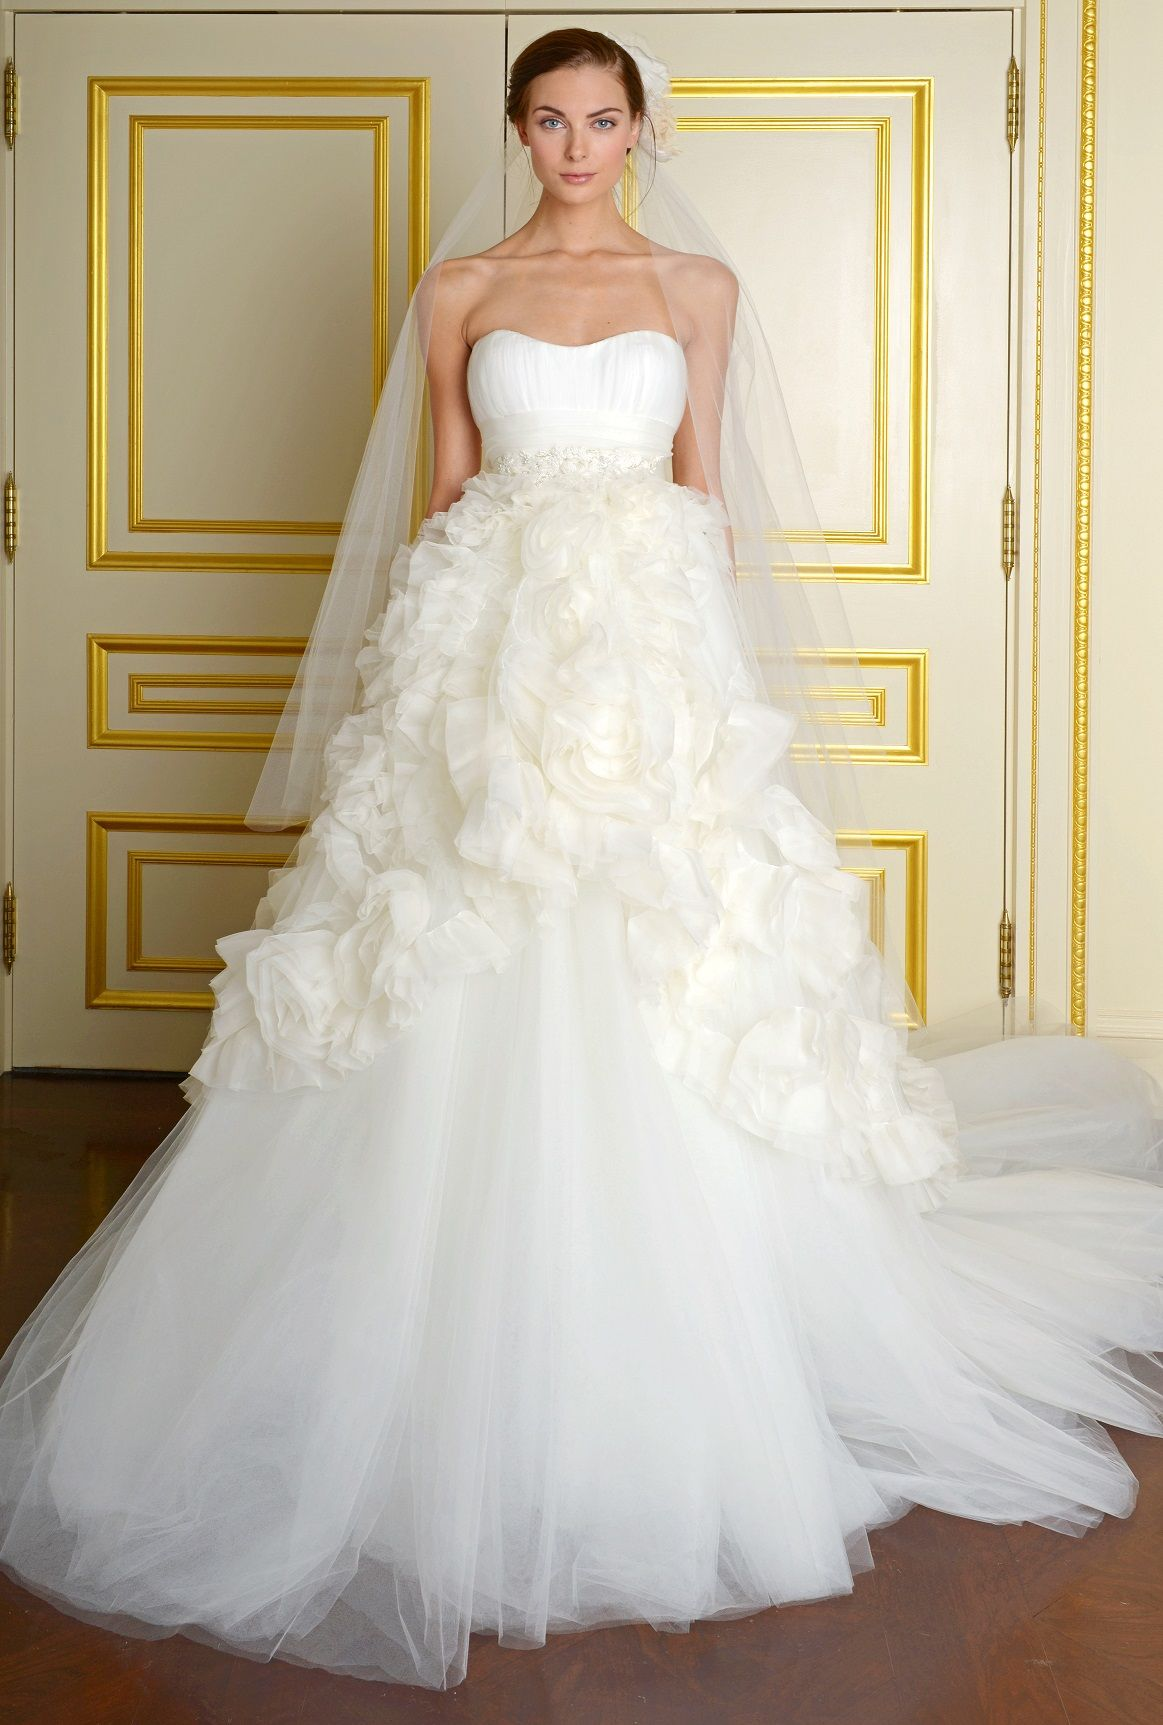 Elite wedding dresses  Marchesa Trunk Show at Luelite Bridal Salon Join us May th u May